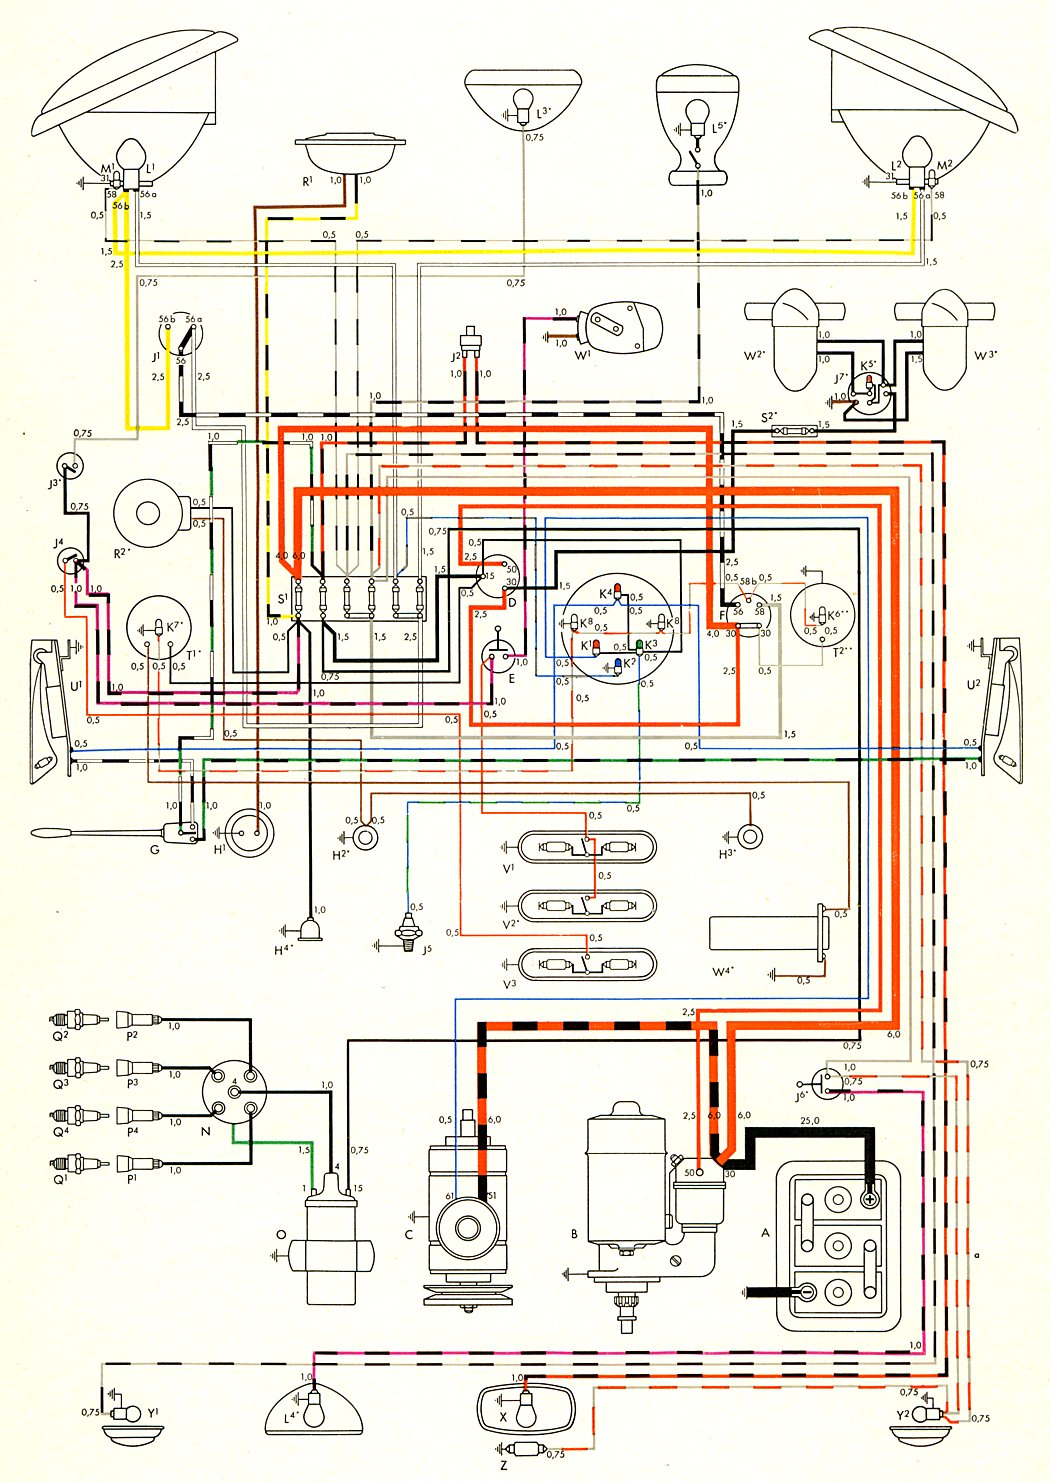 volkswagen wiring diagram thesamba com type 2 wiring diagrams 1957 nov 1957 turn signal wiring